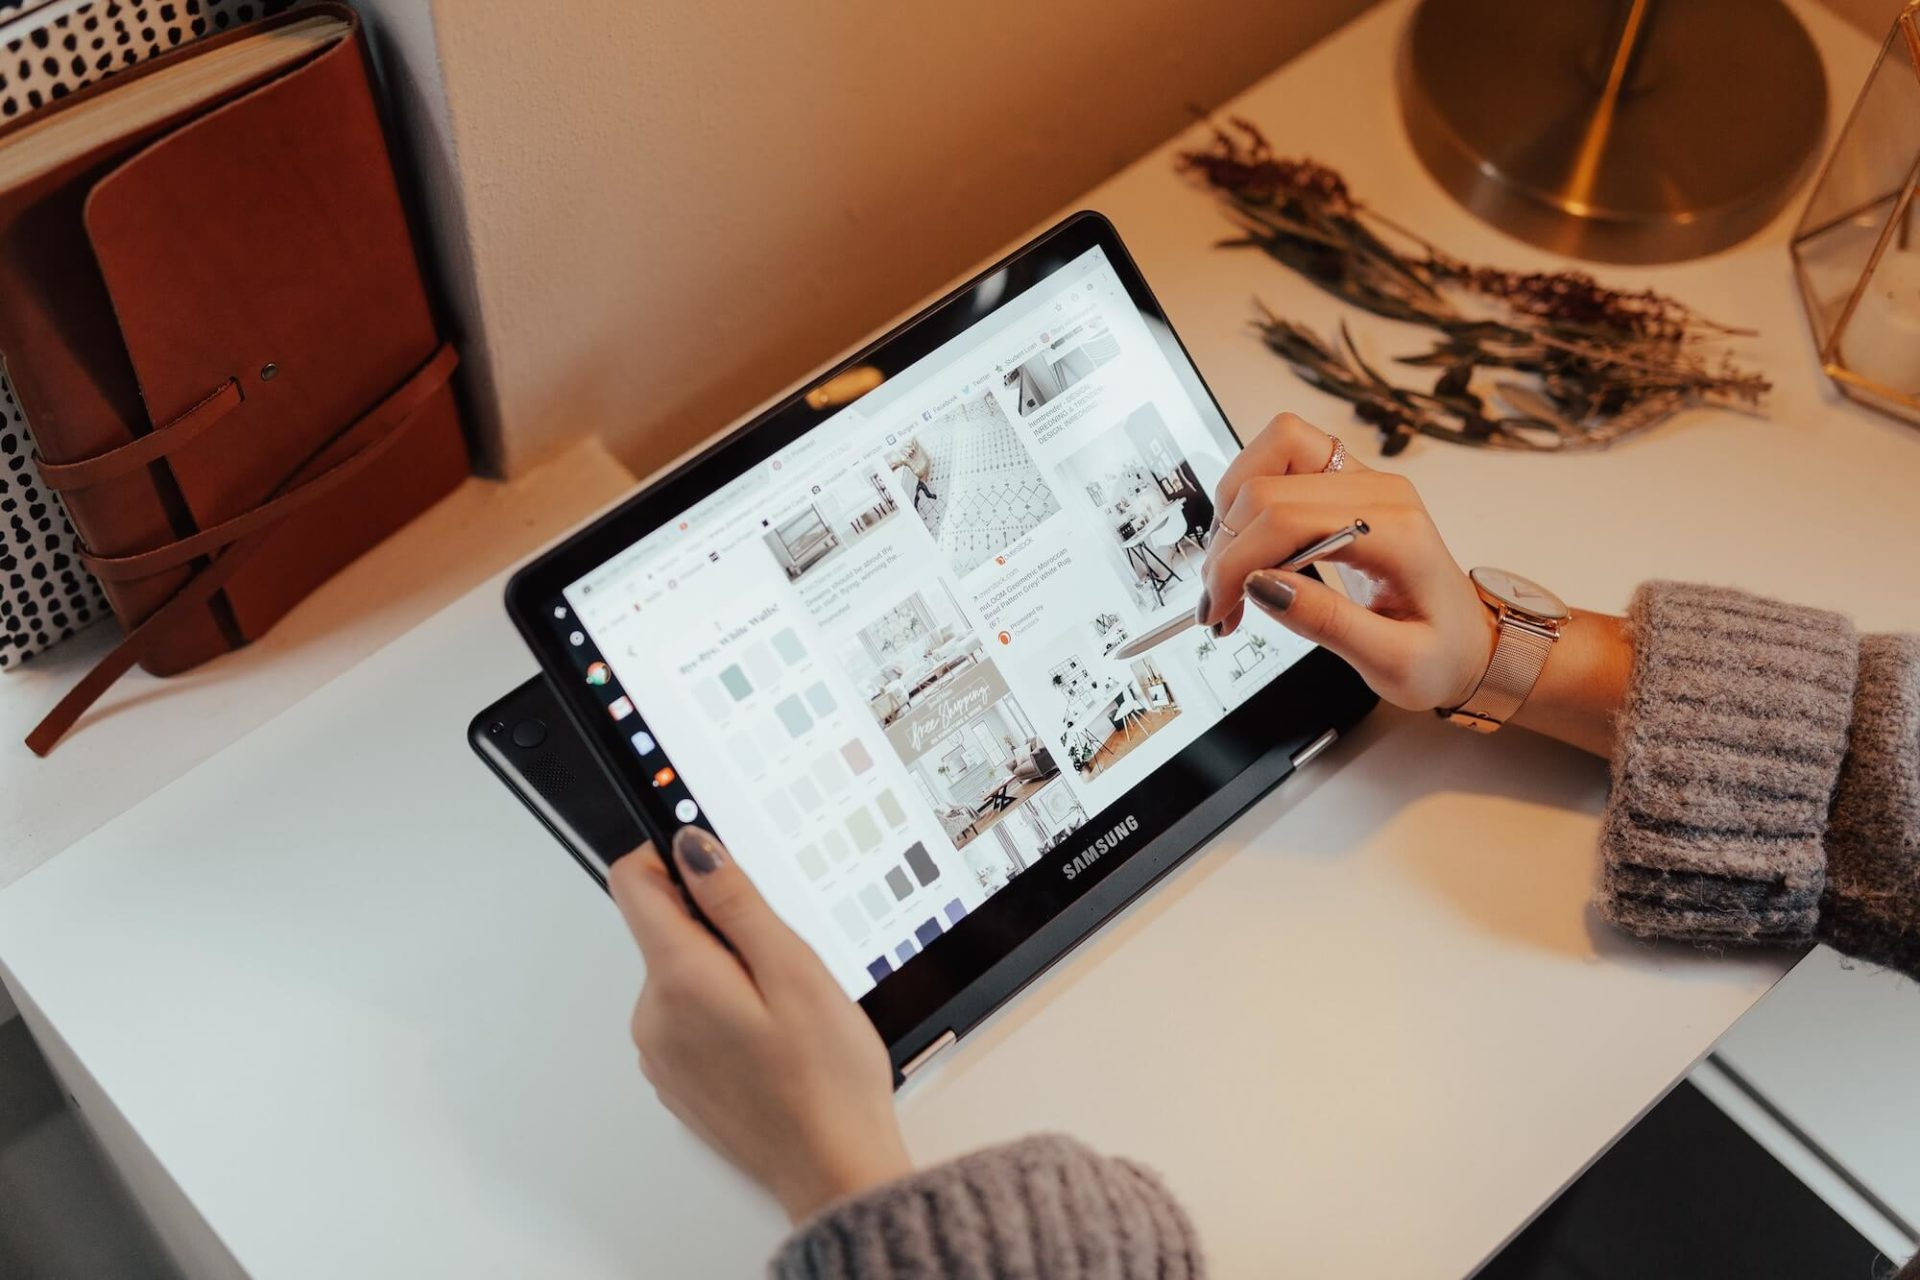 Woman scrolling through Pinterest on her tablet